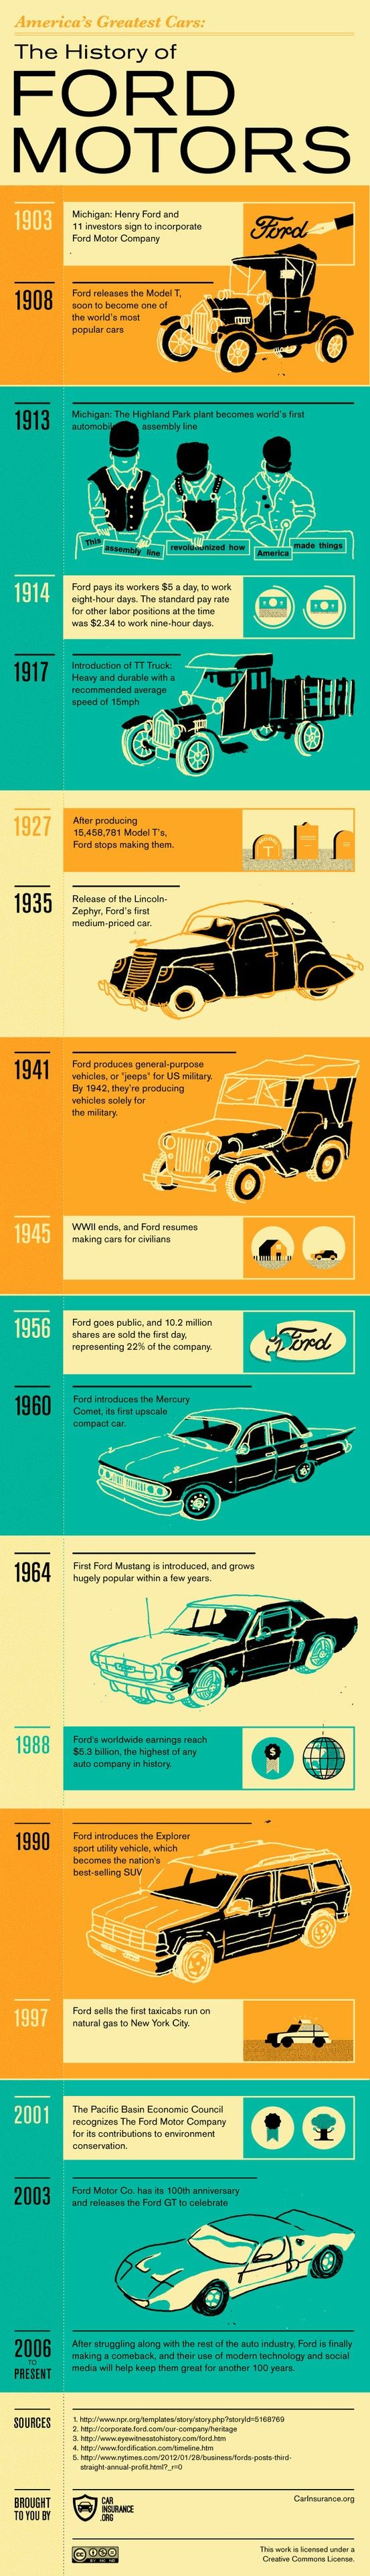 The History of Ford Motor. America's Greatest Cars: Ford Motor Company